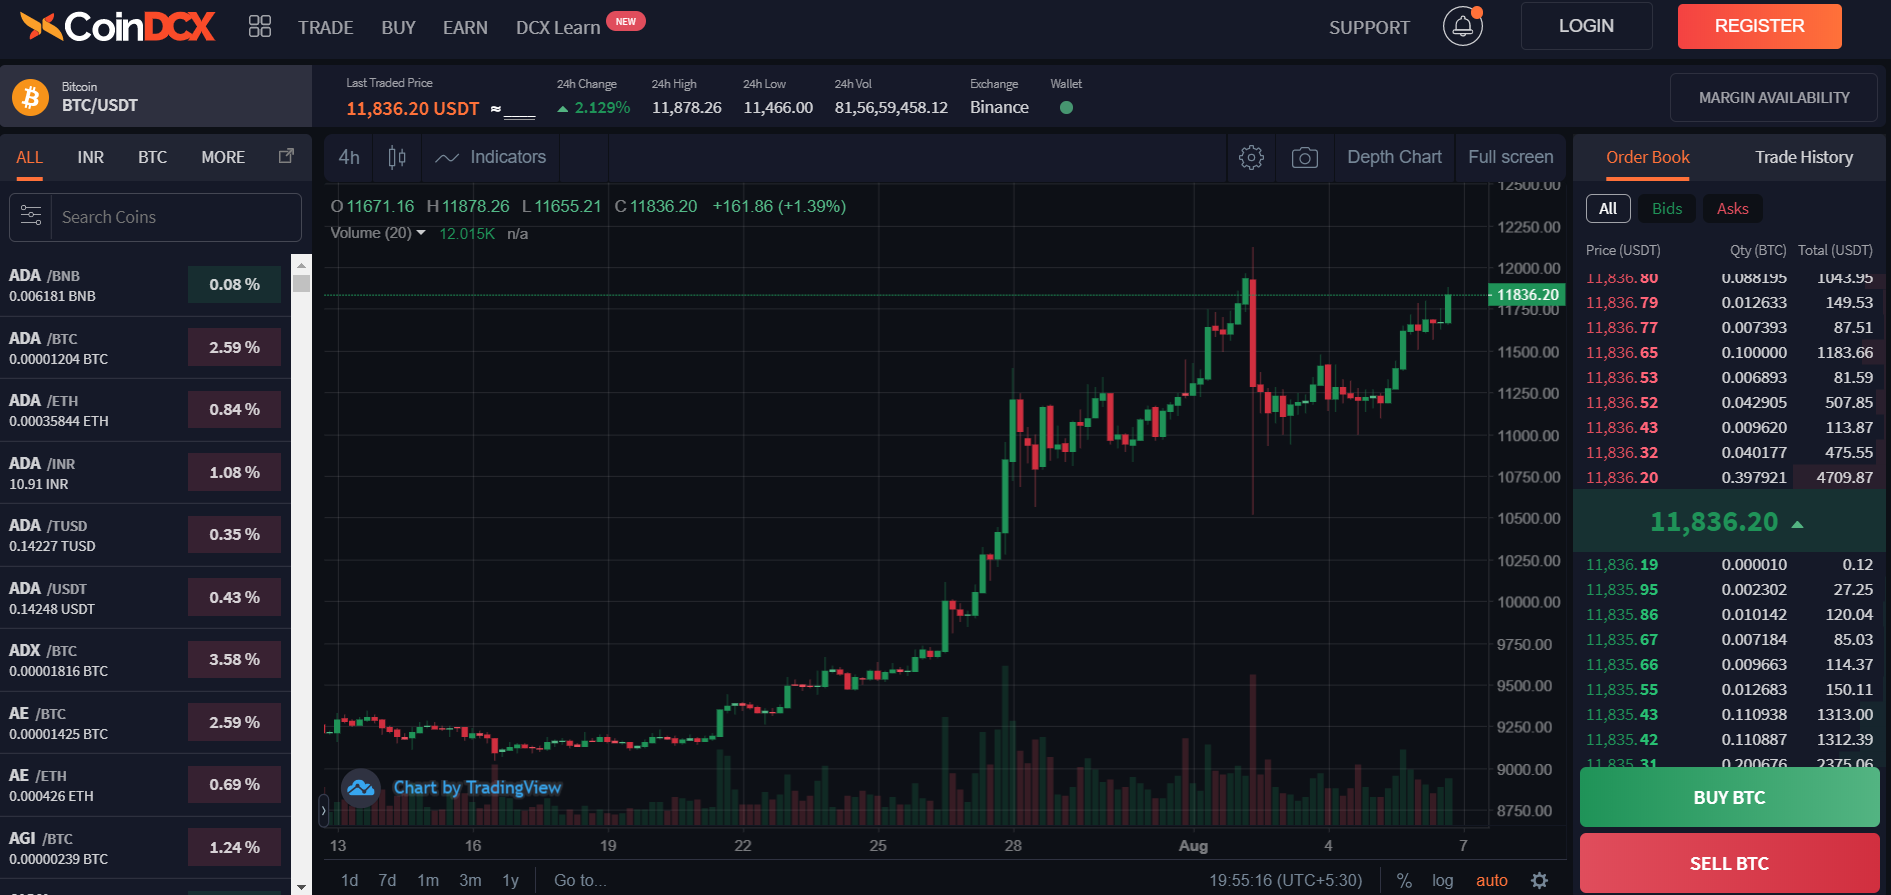 CoinDCX Trading View